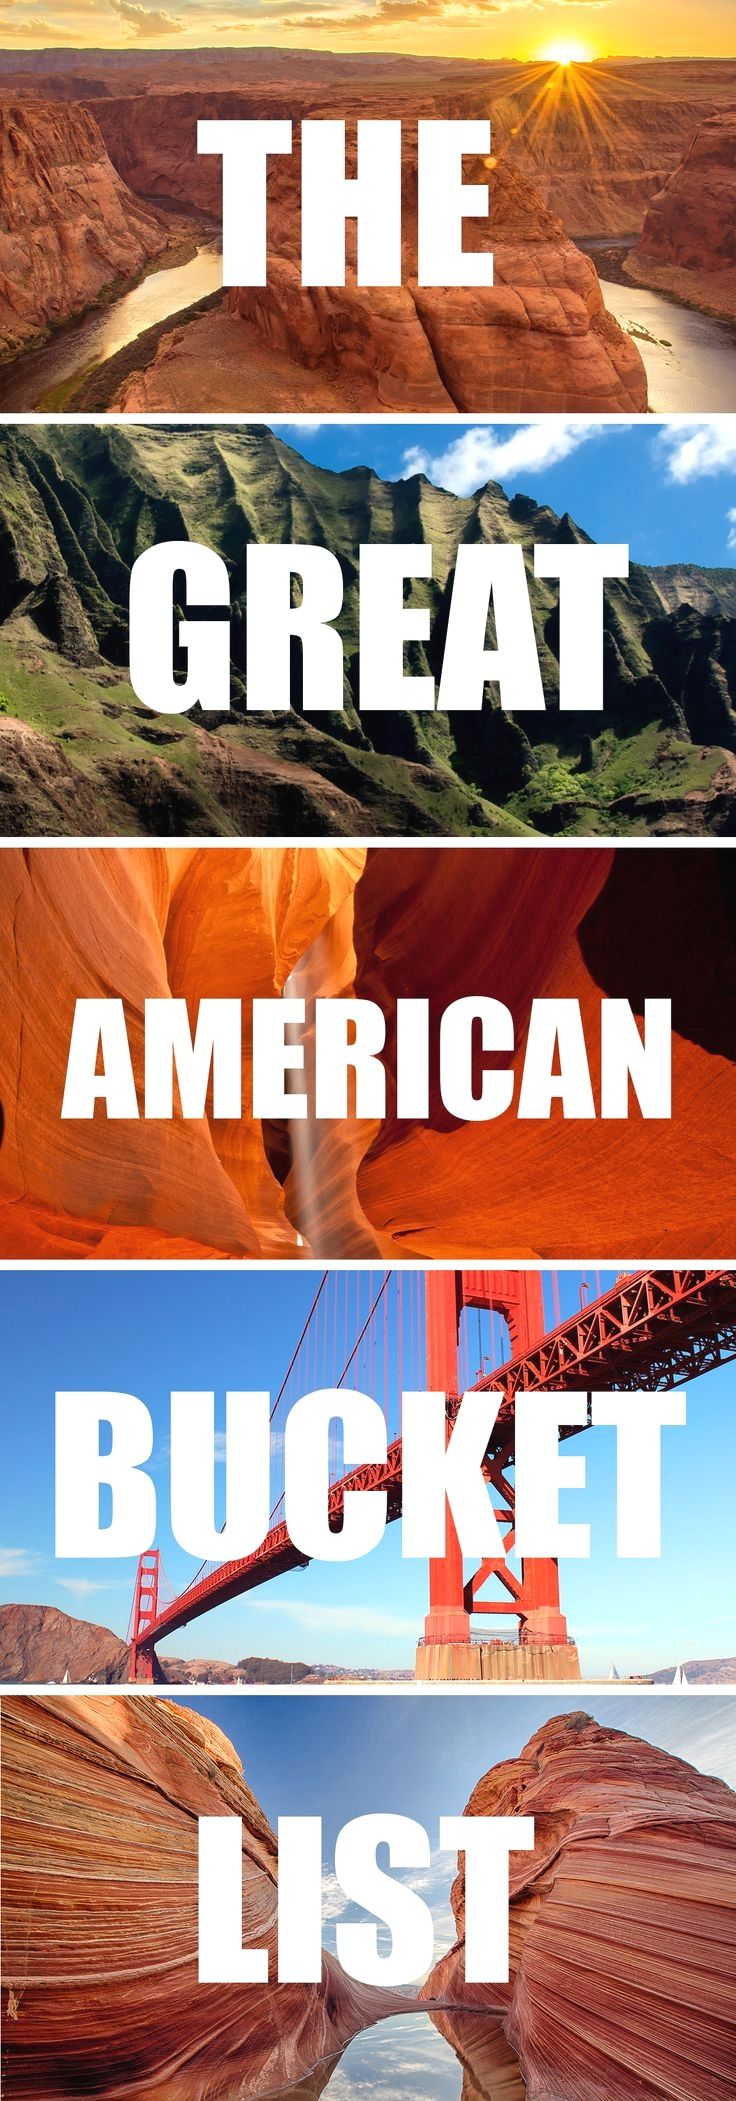 The Great American Bucket List | travel | Pinterest | Buckets, United states and Park